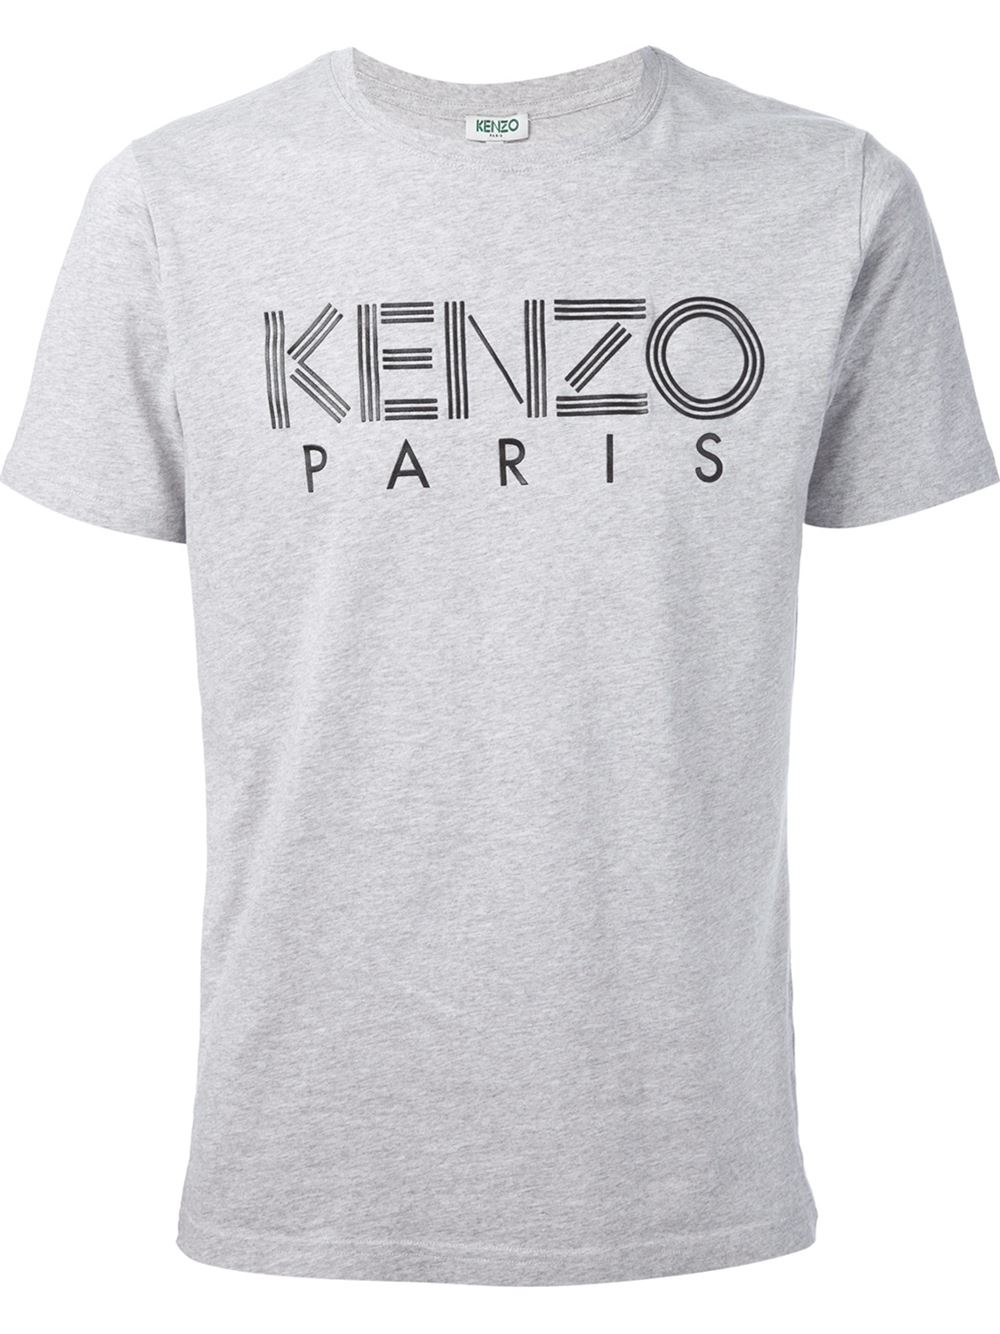 kenzo 39 paris 39 t shirt in gray for men lyst. Black Bedroom Furniture Sets. Home Design Ideas